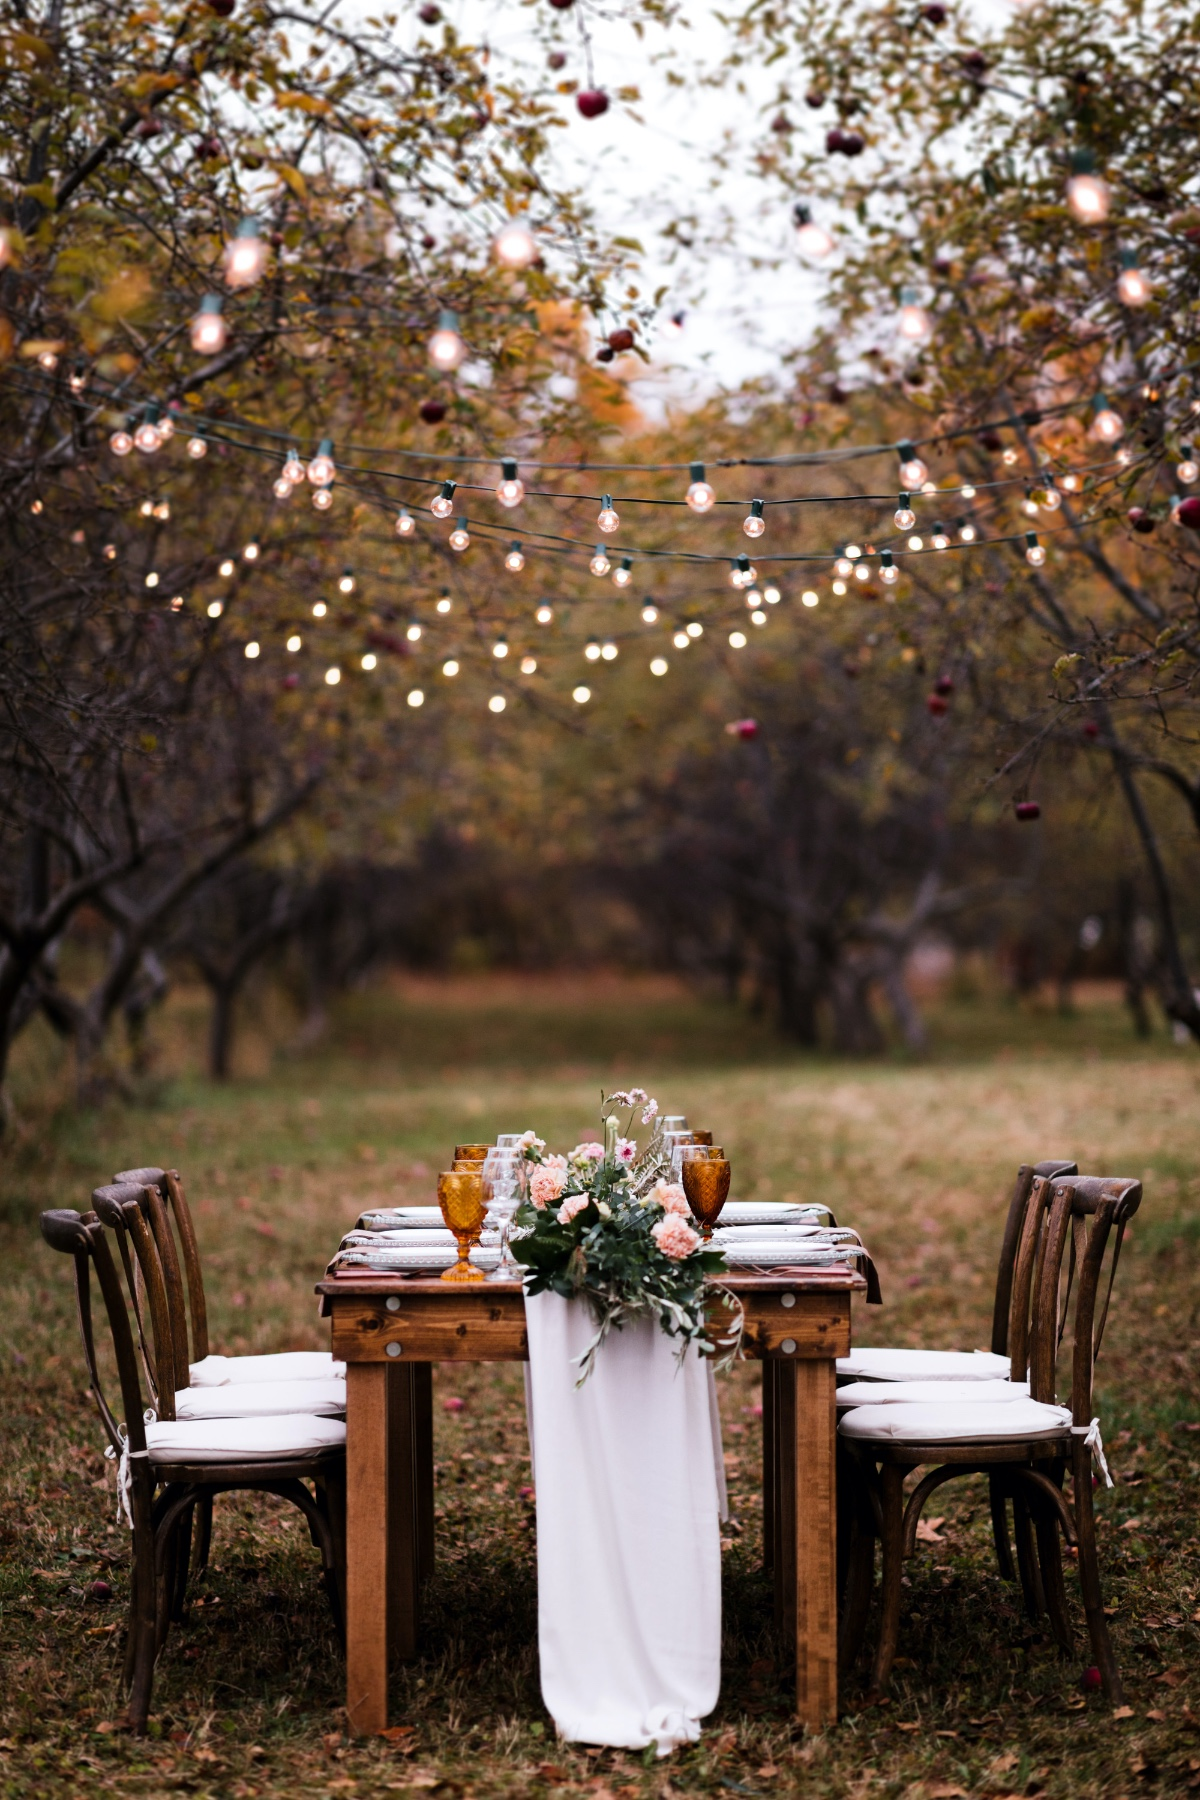 Outdoor dining in apple orchard under twinkle lights